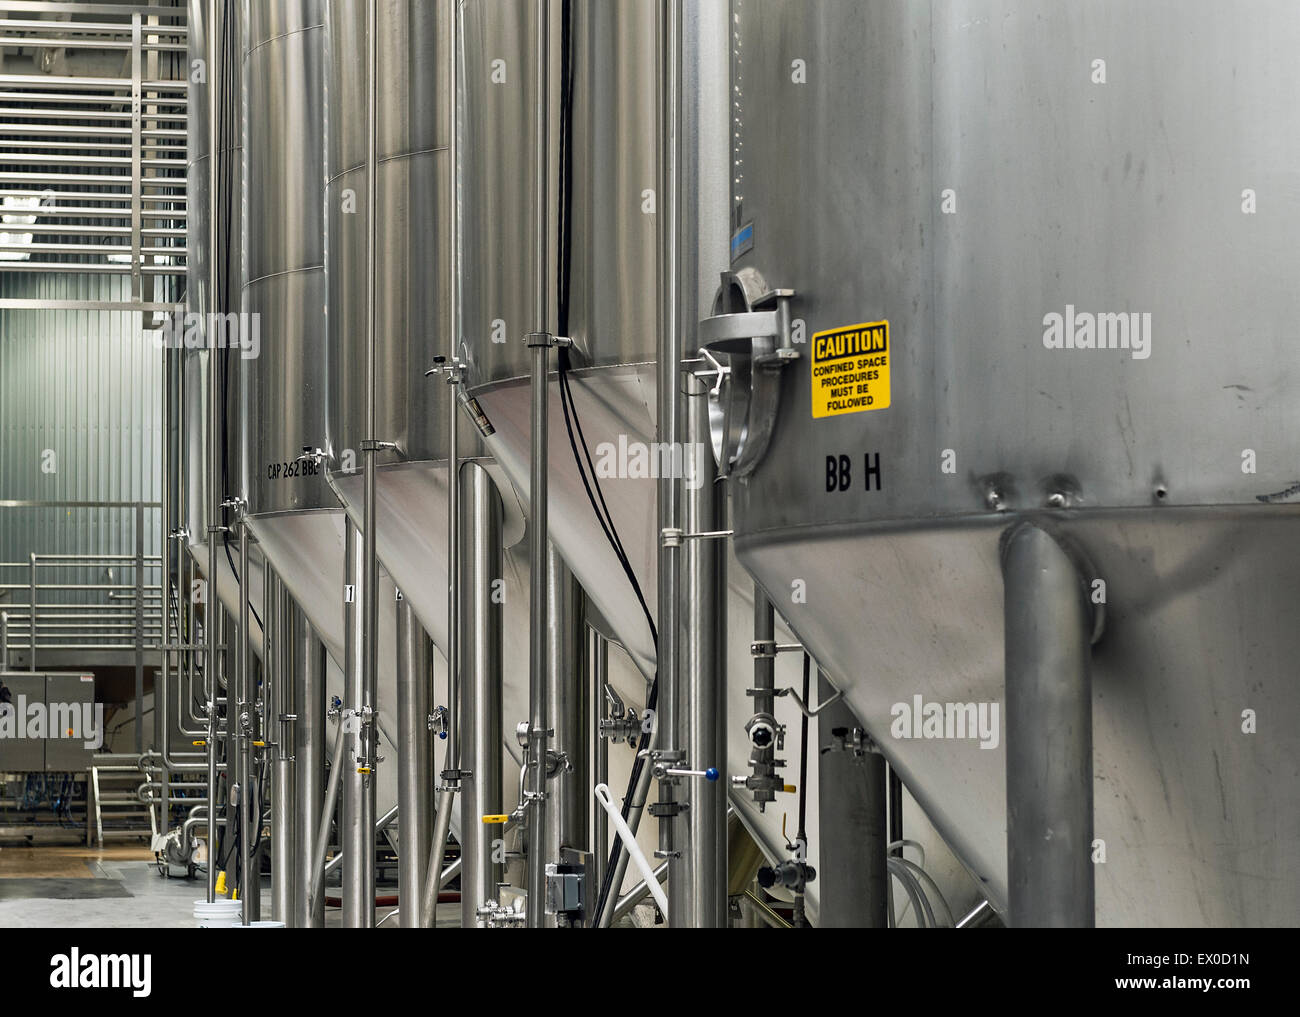 Fermentation tanks at a brewery. - Stock Image